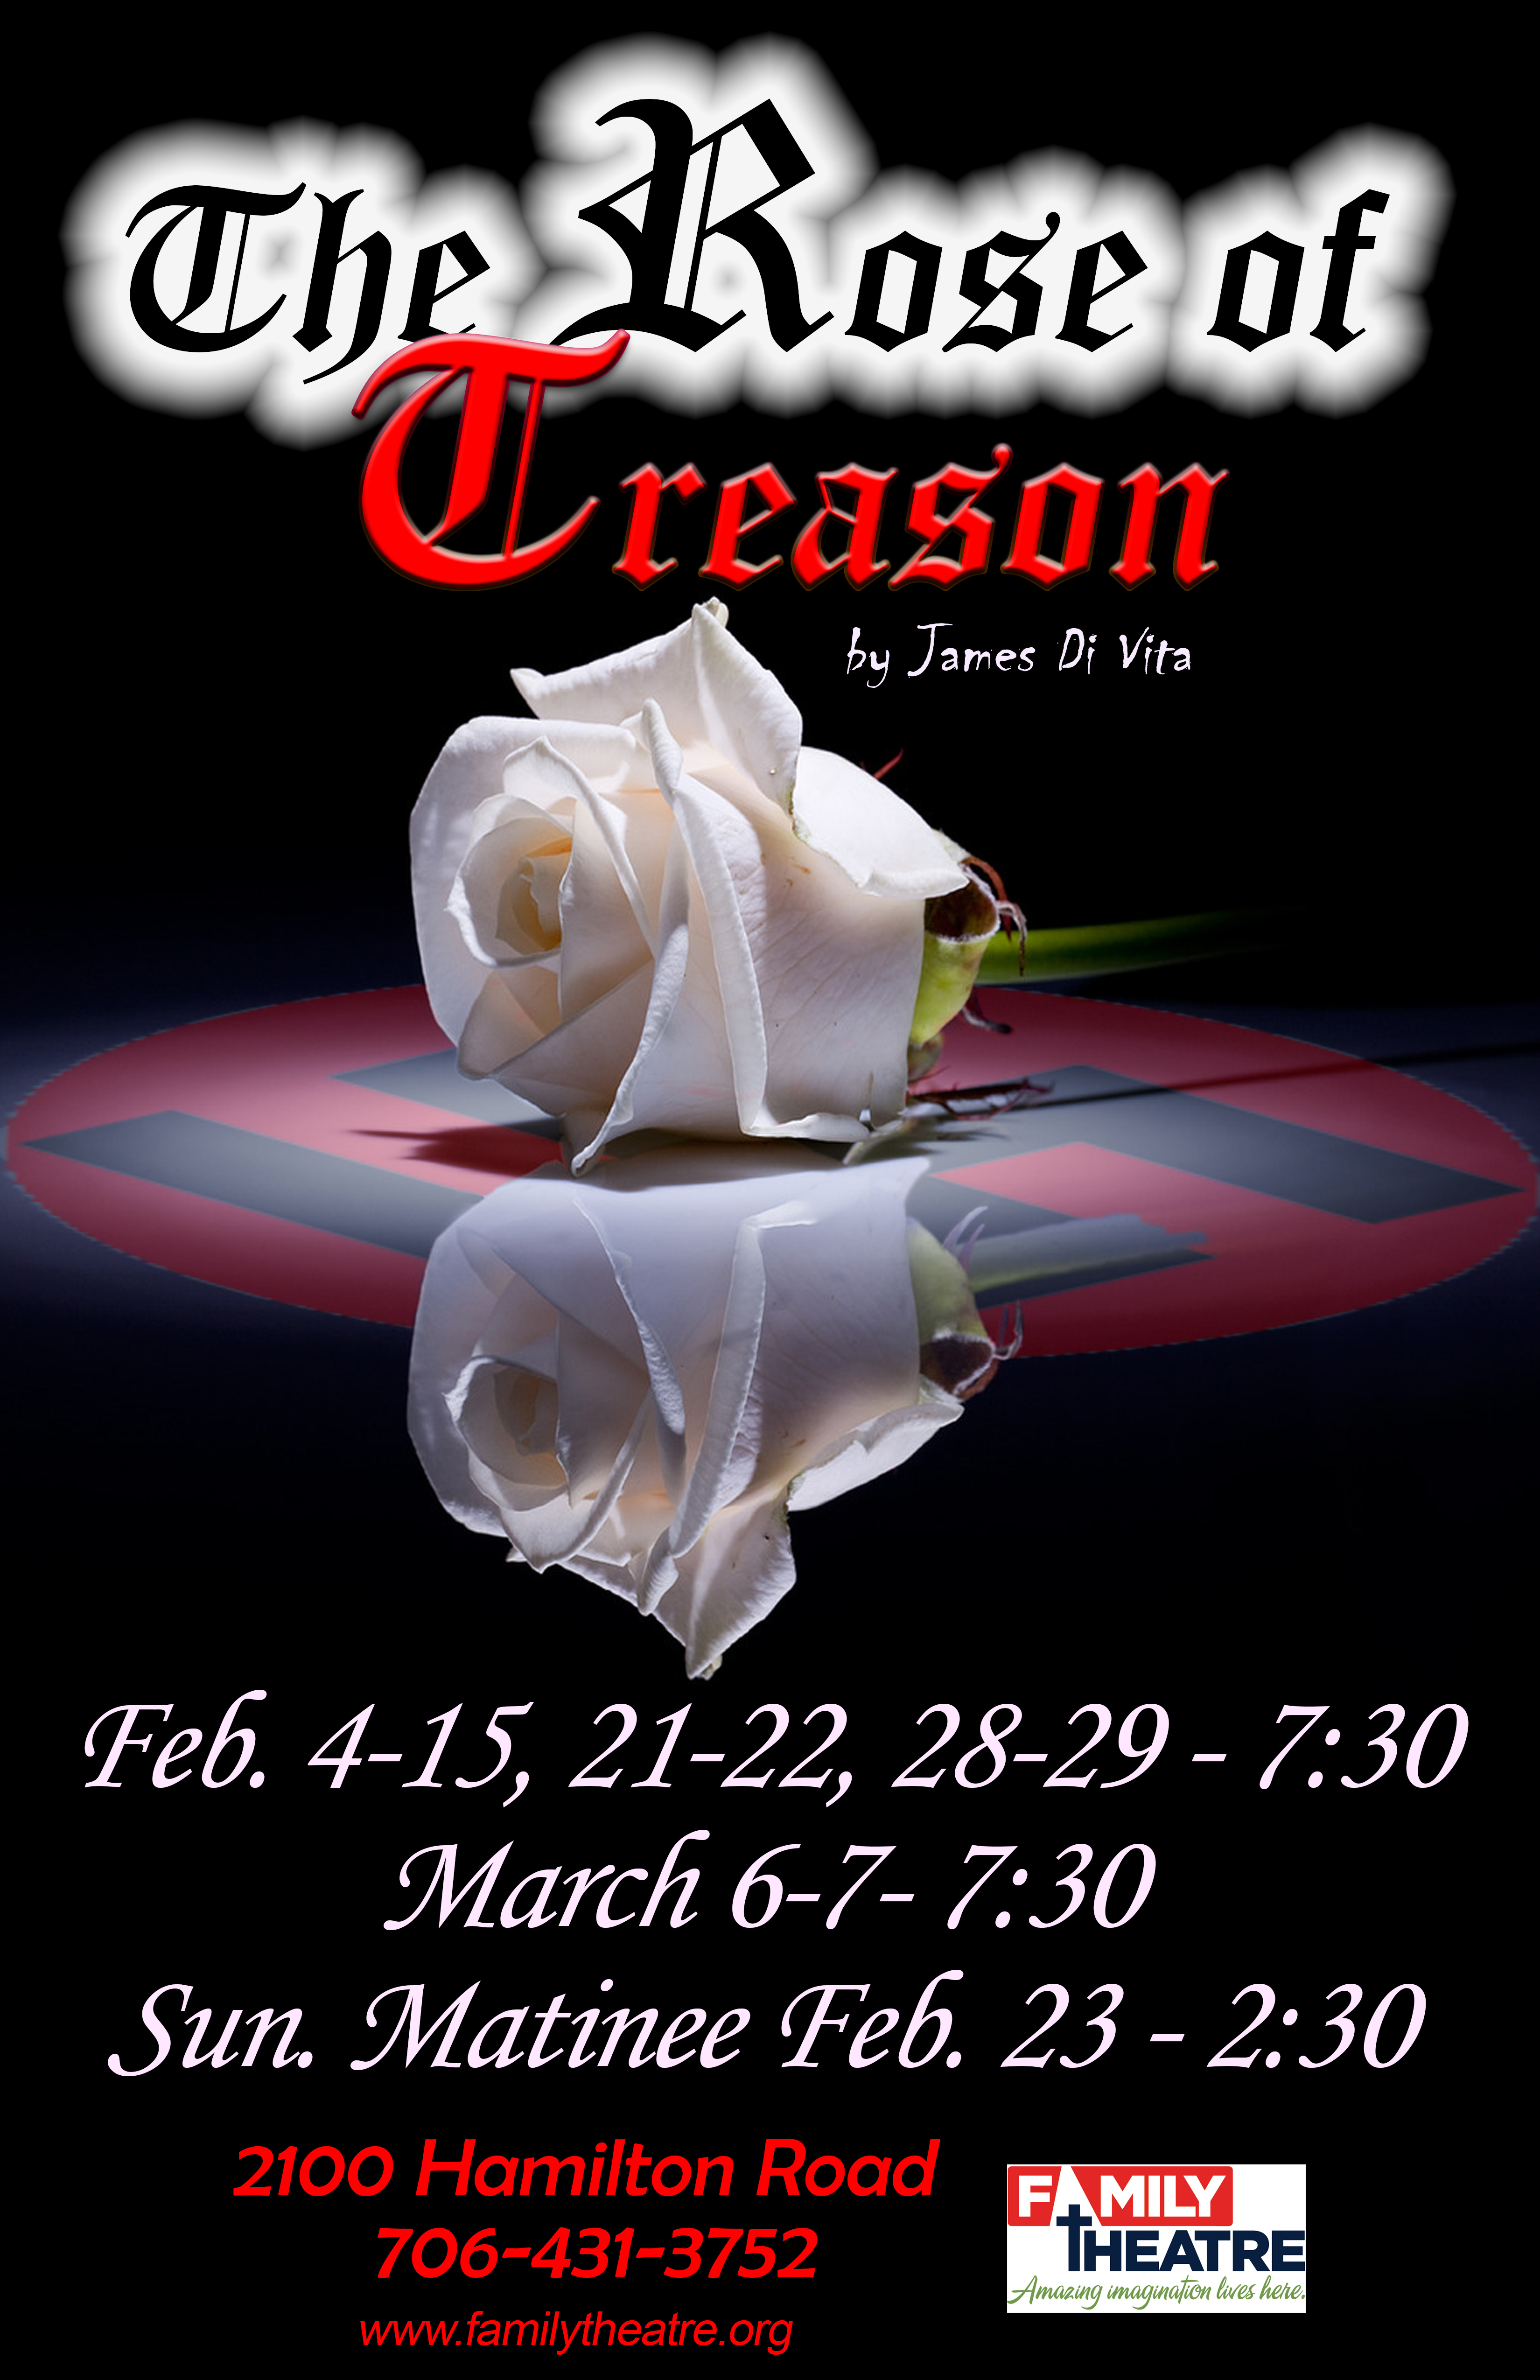 Family Theatre presents The Rose of Treason